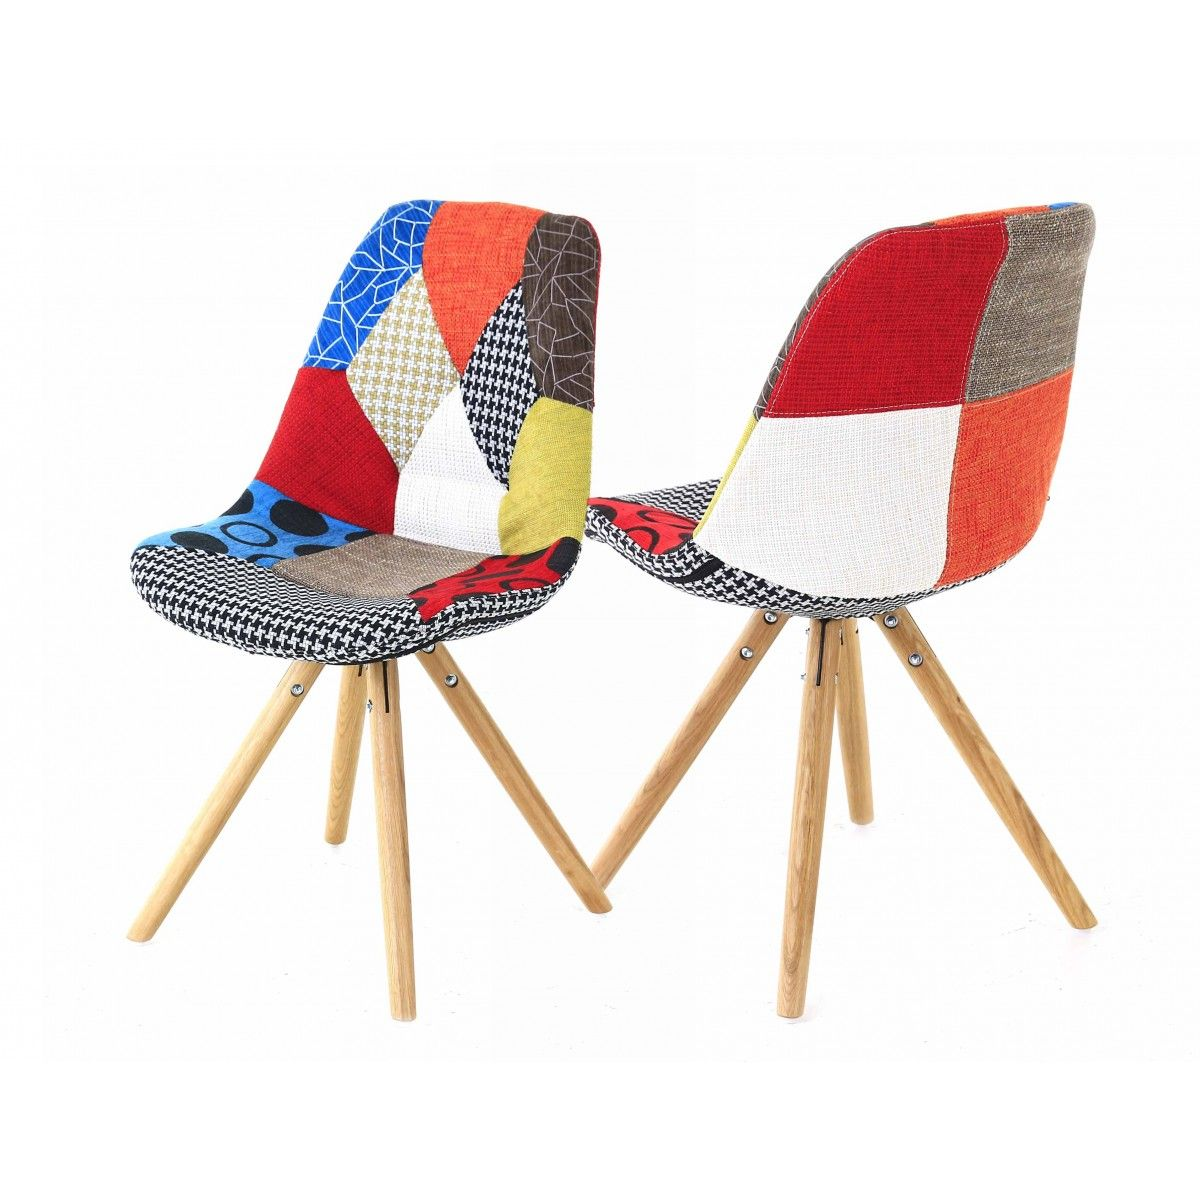 2x chaise lounge multicolore patchwork - Chaise Scandinave Multicolore